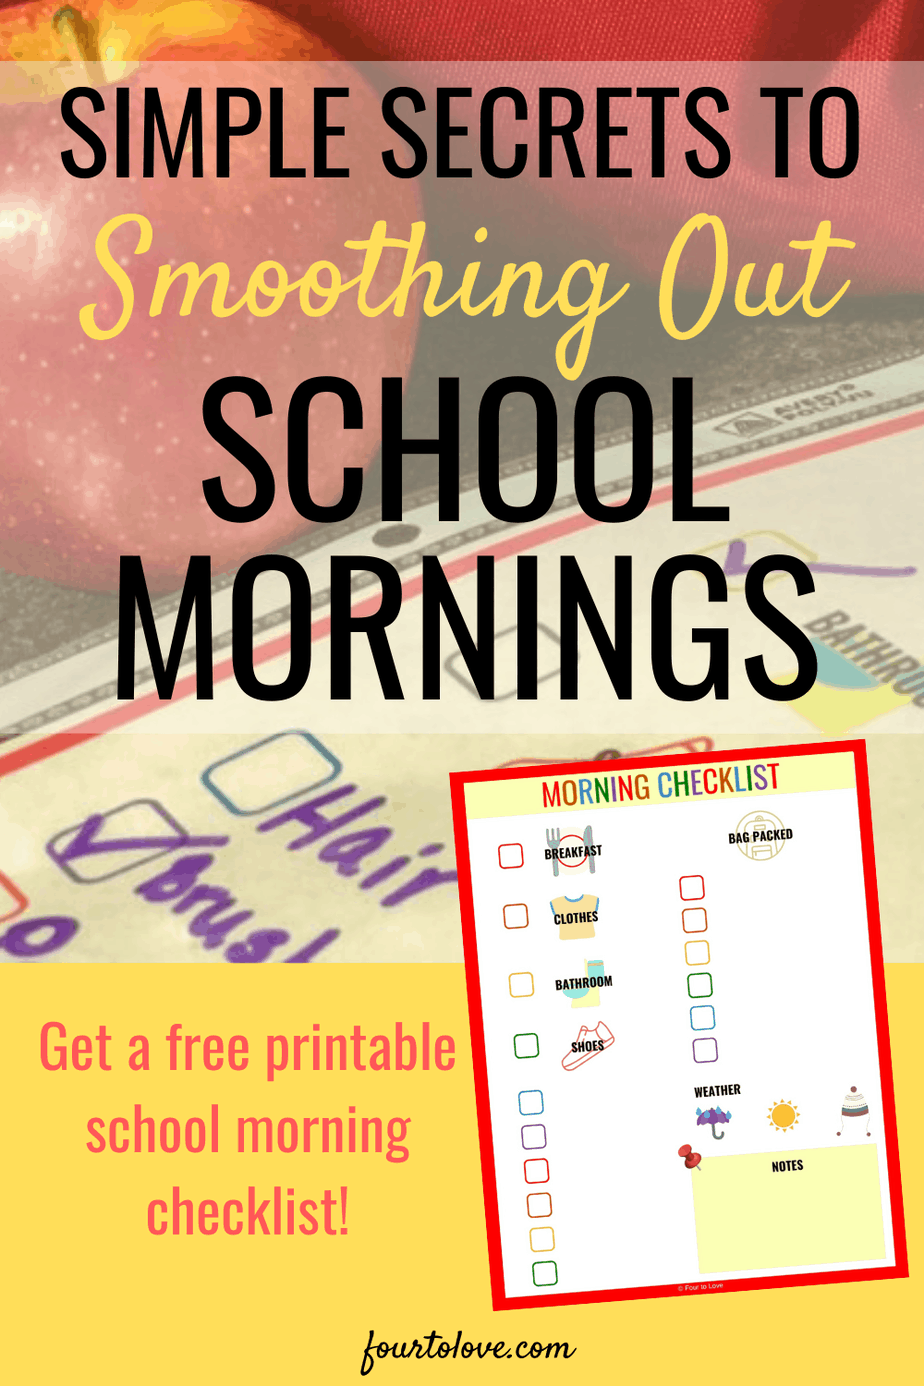 Simple secrets to smoothing out school mornings